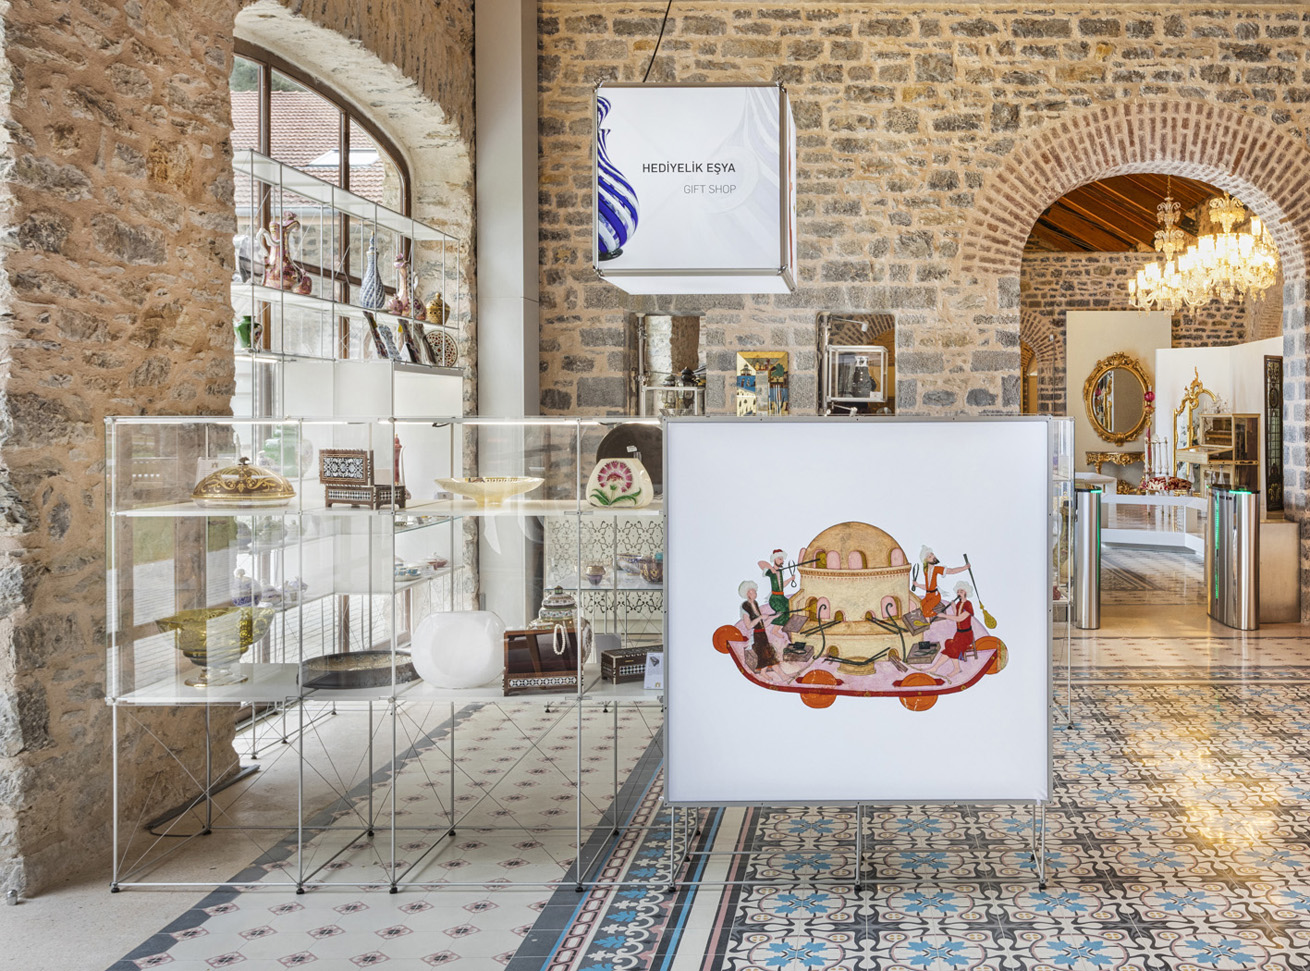 Beykoz Crystal and Glass Museum opened